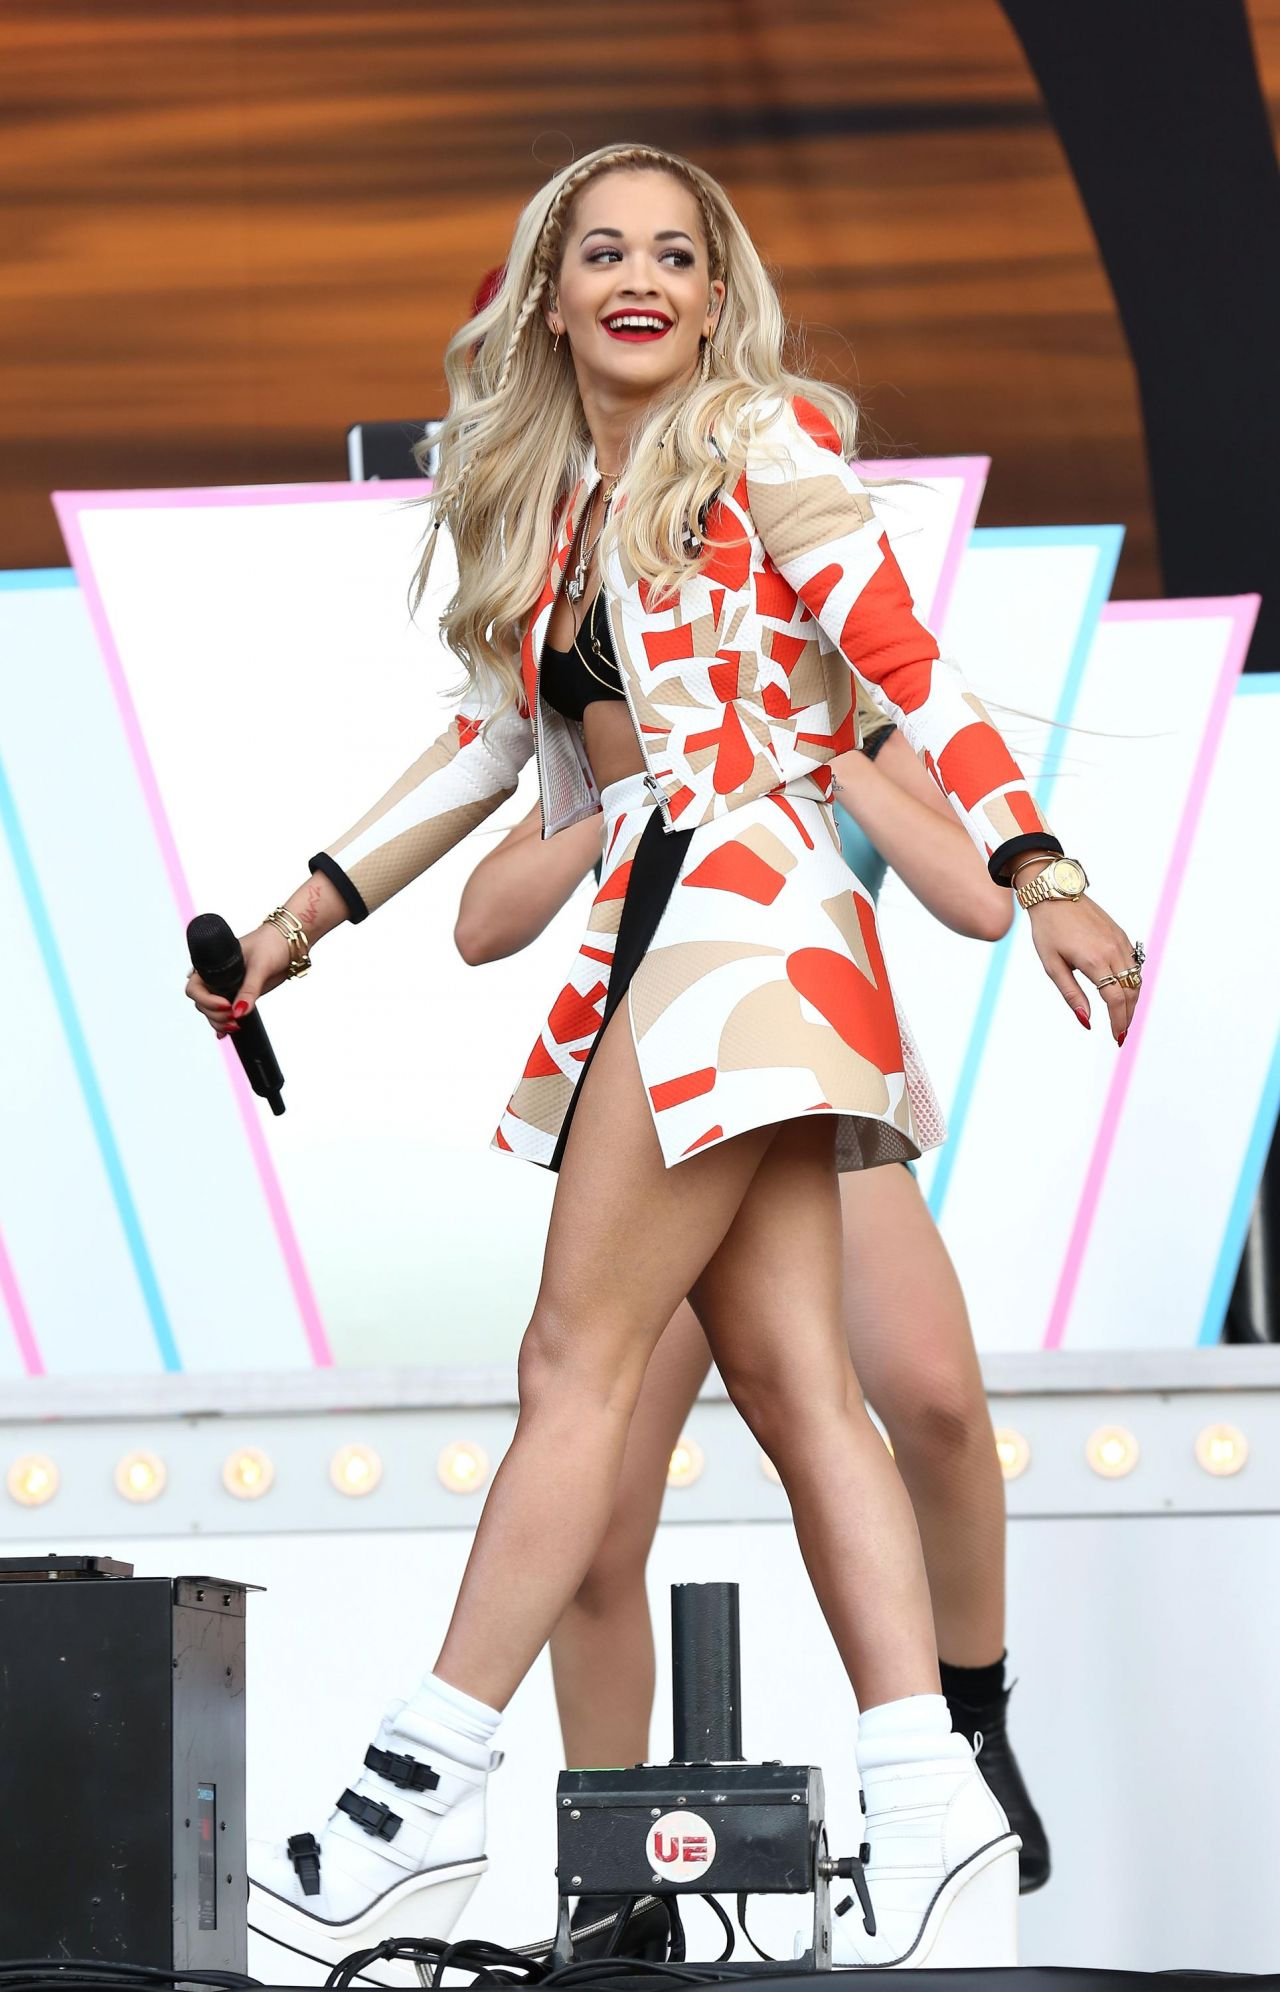 Iggy Azalea | Biography, News, Photos and Videos | Page 4 ...